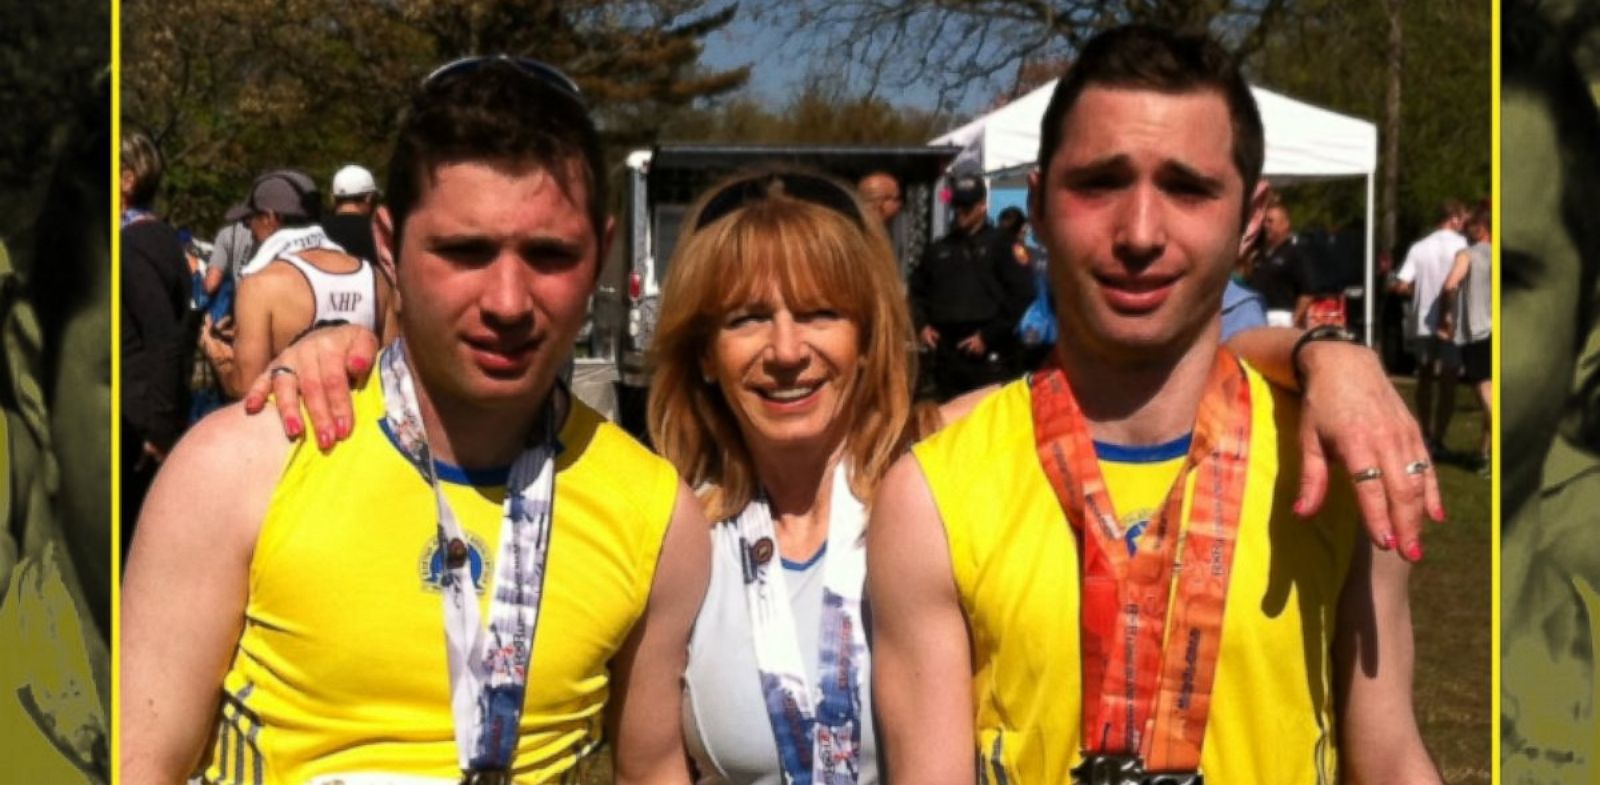 autistic twin runners make strides at 2013 new york city marathon abc news. Black Bedroom Furniture Sets. Home Design Ideas